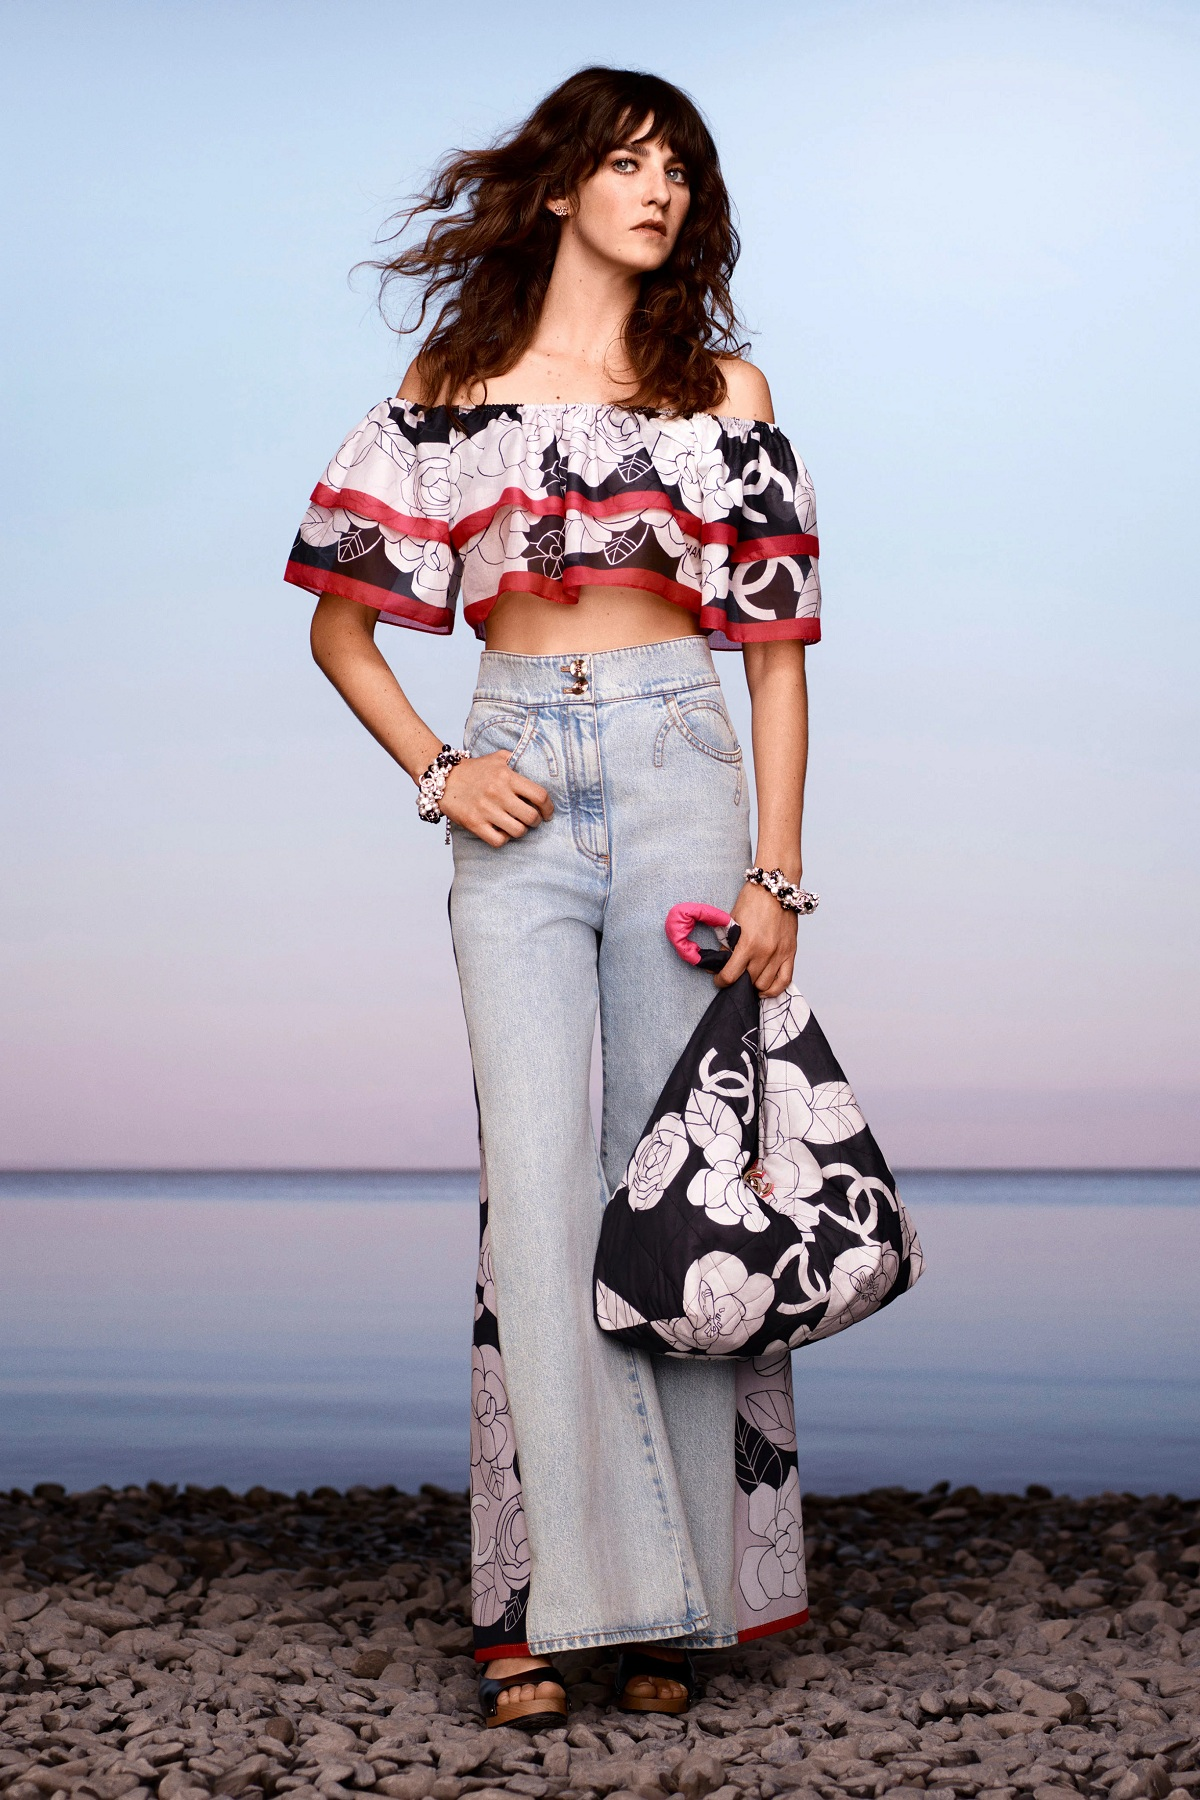 Chanel_Cruise2021_Fashionela (7)